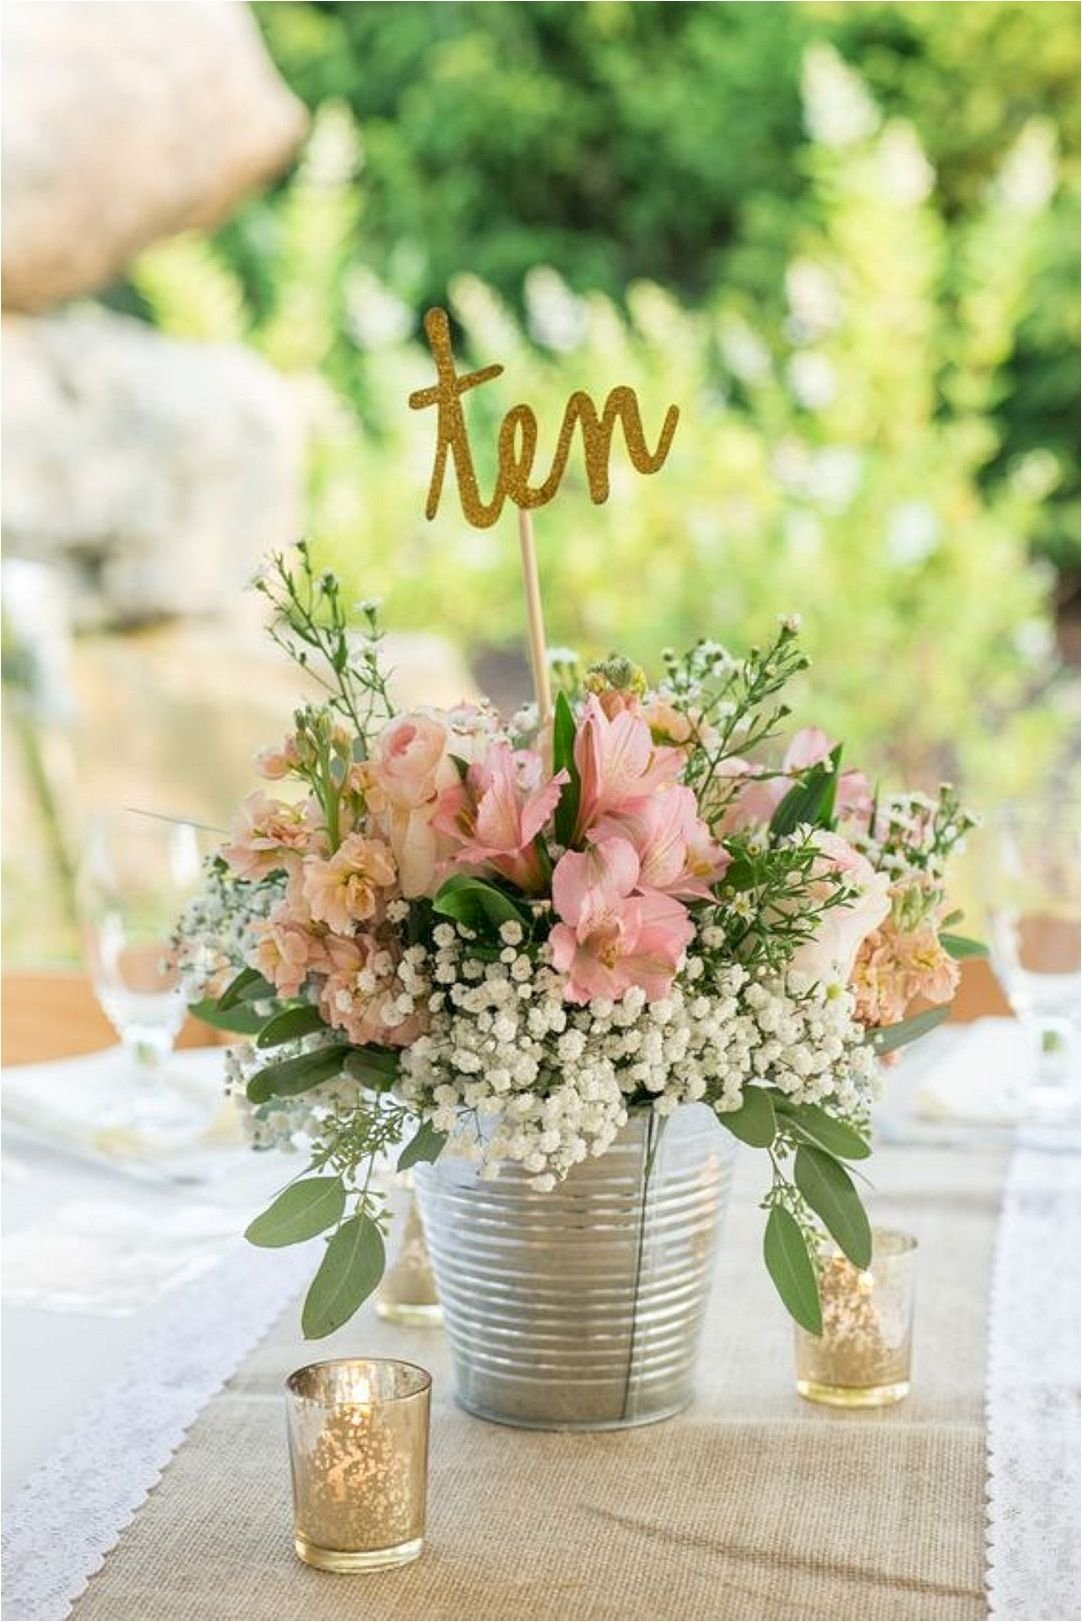 10 Lovable Ideas For Wedding Centerpieces On A Budget cheap wedding centerpieces ideas 2017 wedding centerpieces 2 2021